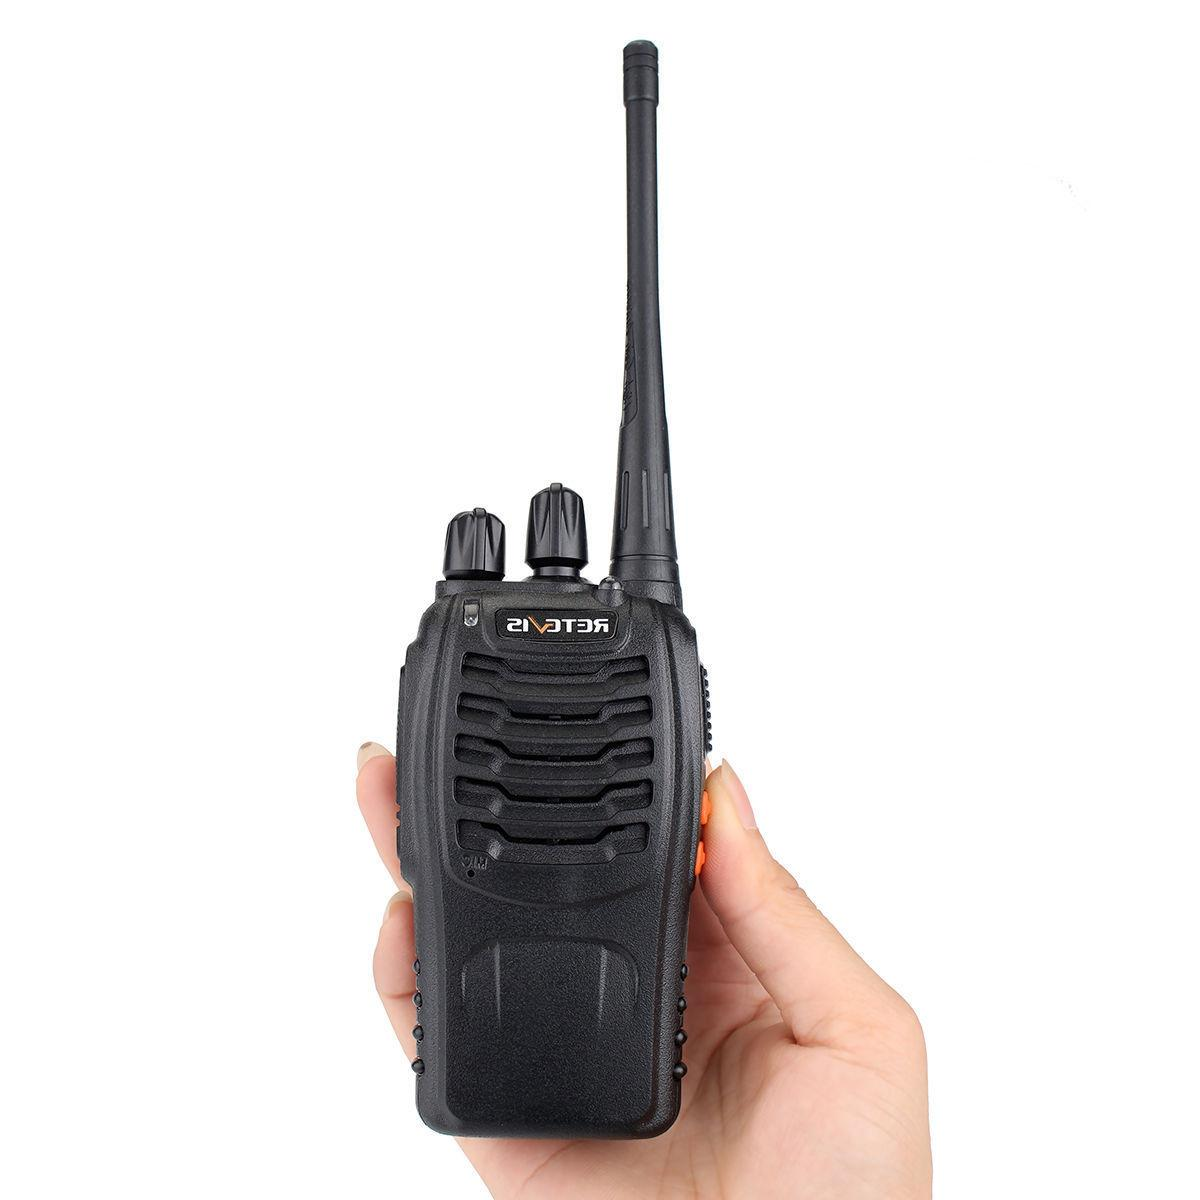 10XRetevis H777 16CH CTCSS/DCS 2-Way Radio US